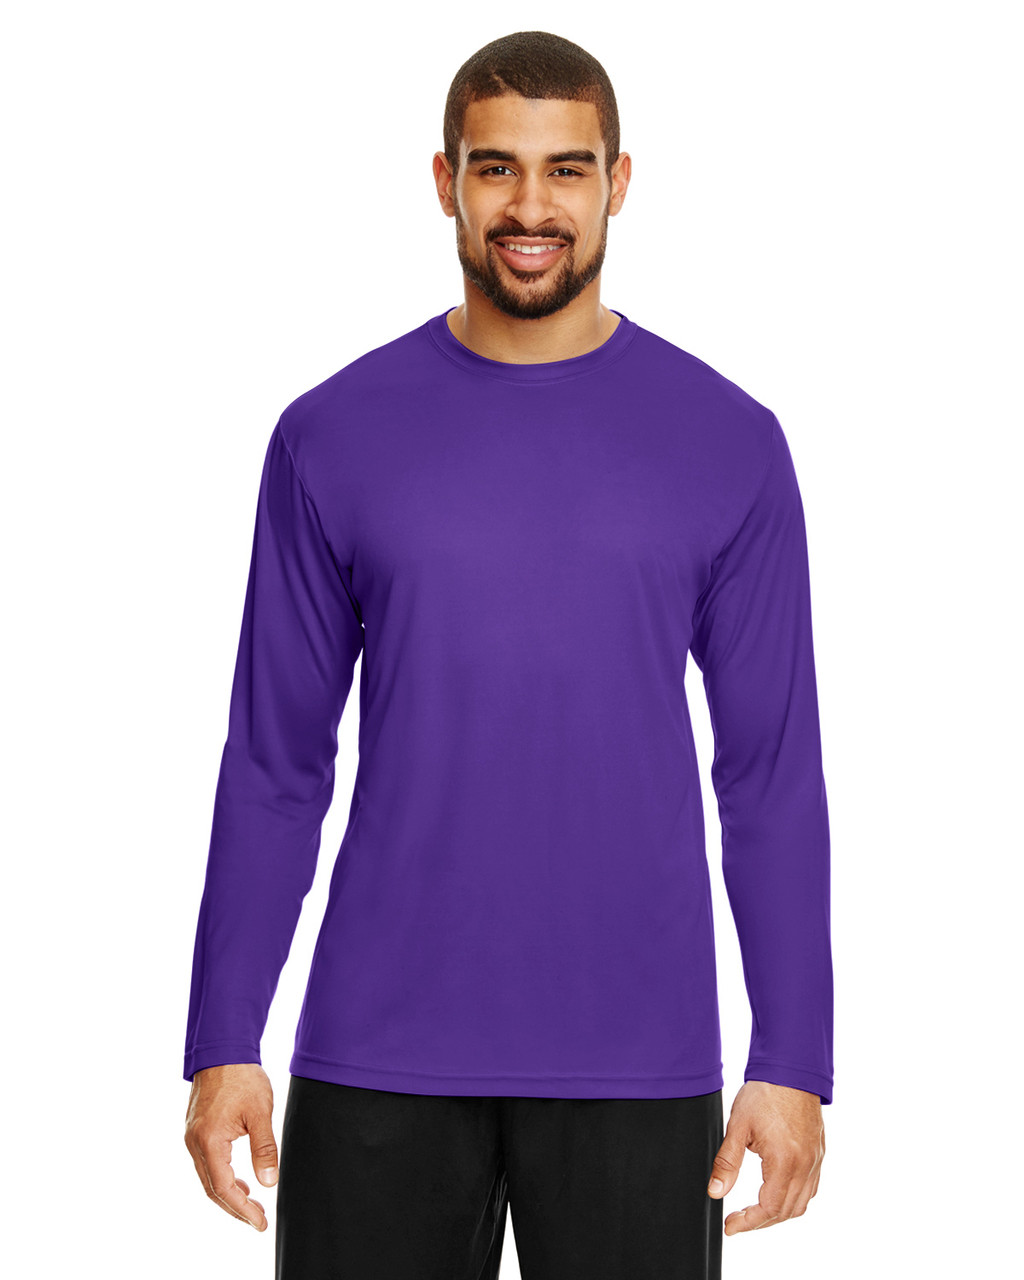 Sport Purple - TT11L Team 365 Men's Zone Performance Long Sleeve T-Shirt | BlankClothing.ca